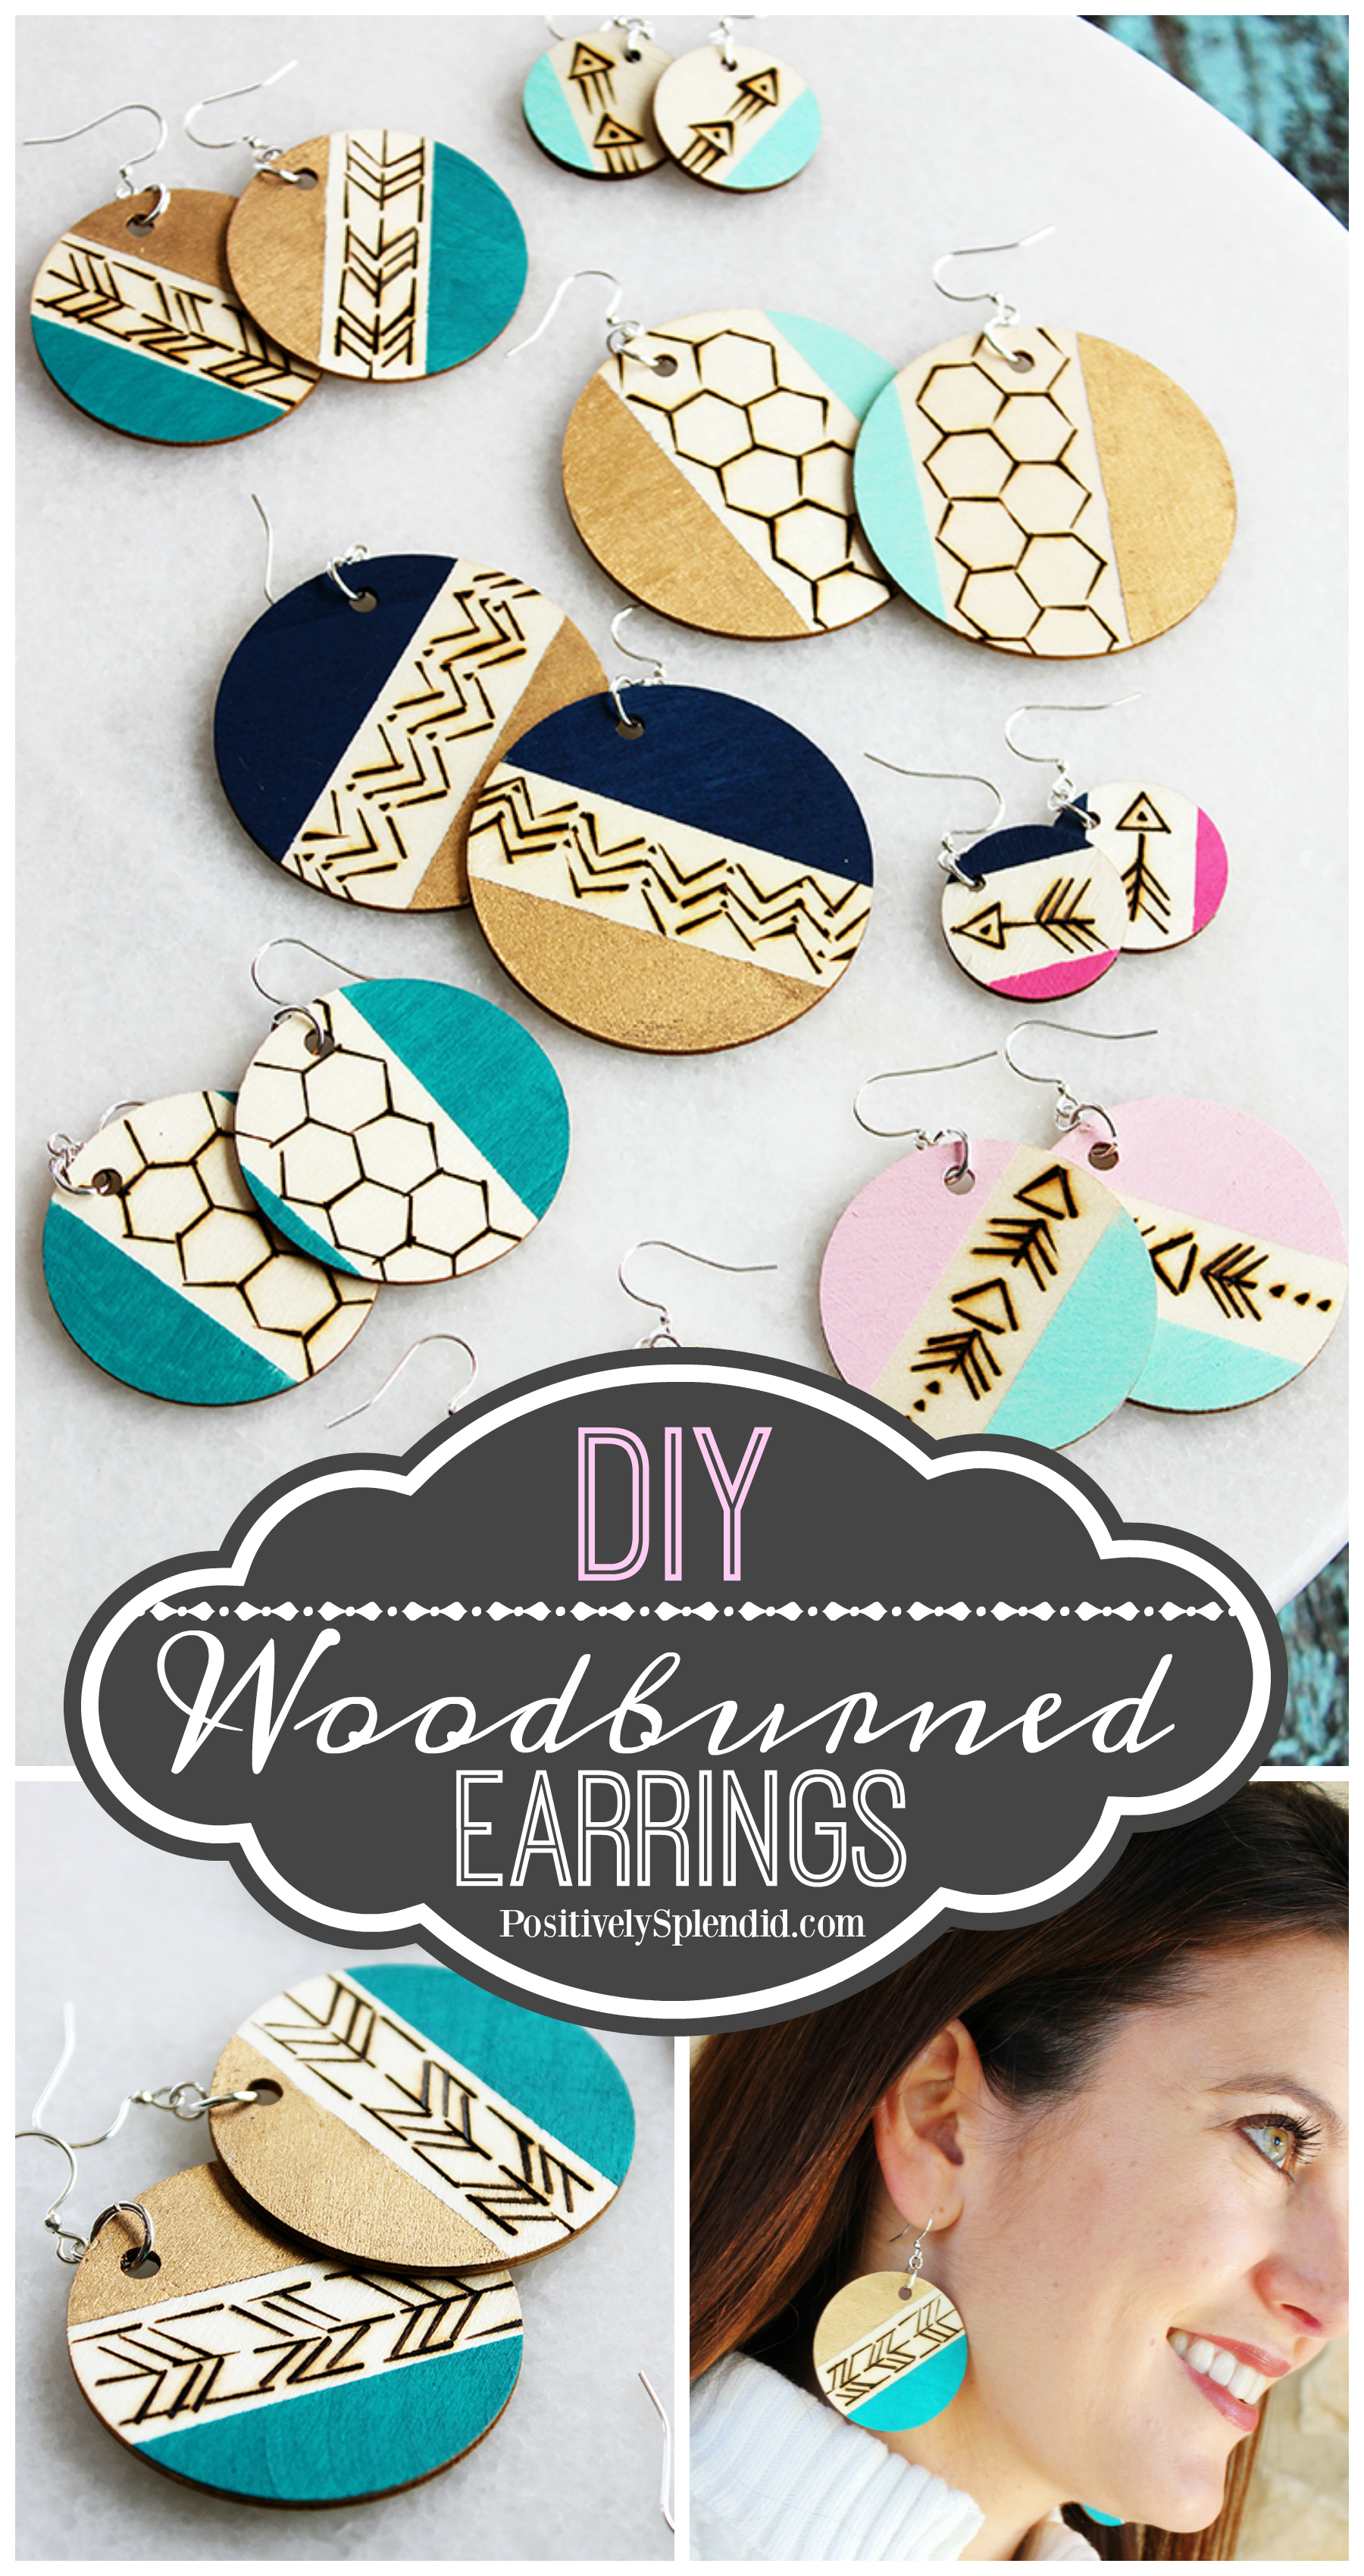 DIY Woodburned Dangle Earrings - A fun gift idea to make in 30 minutes or less! #plaidcreators